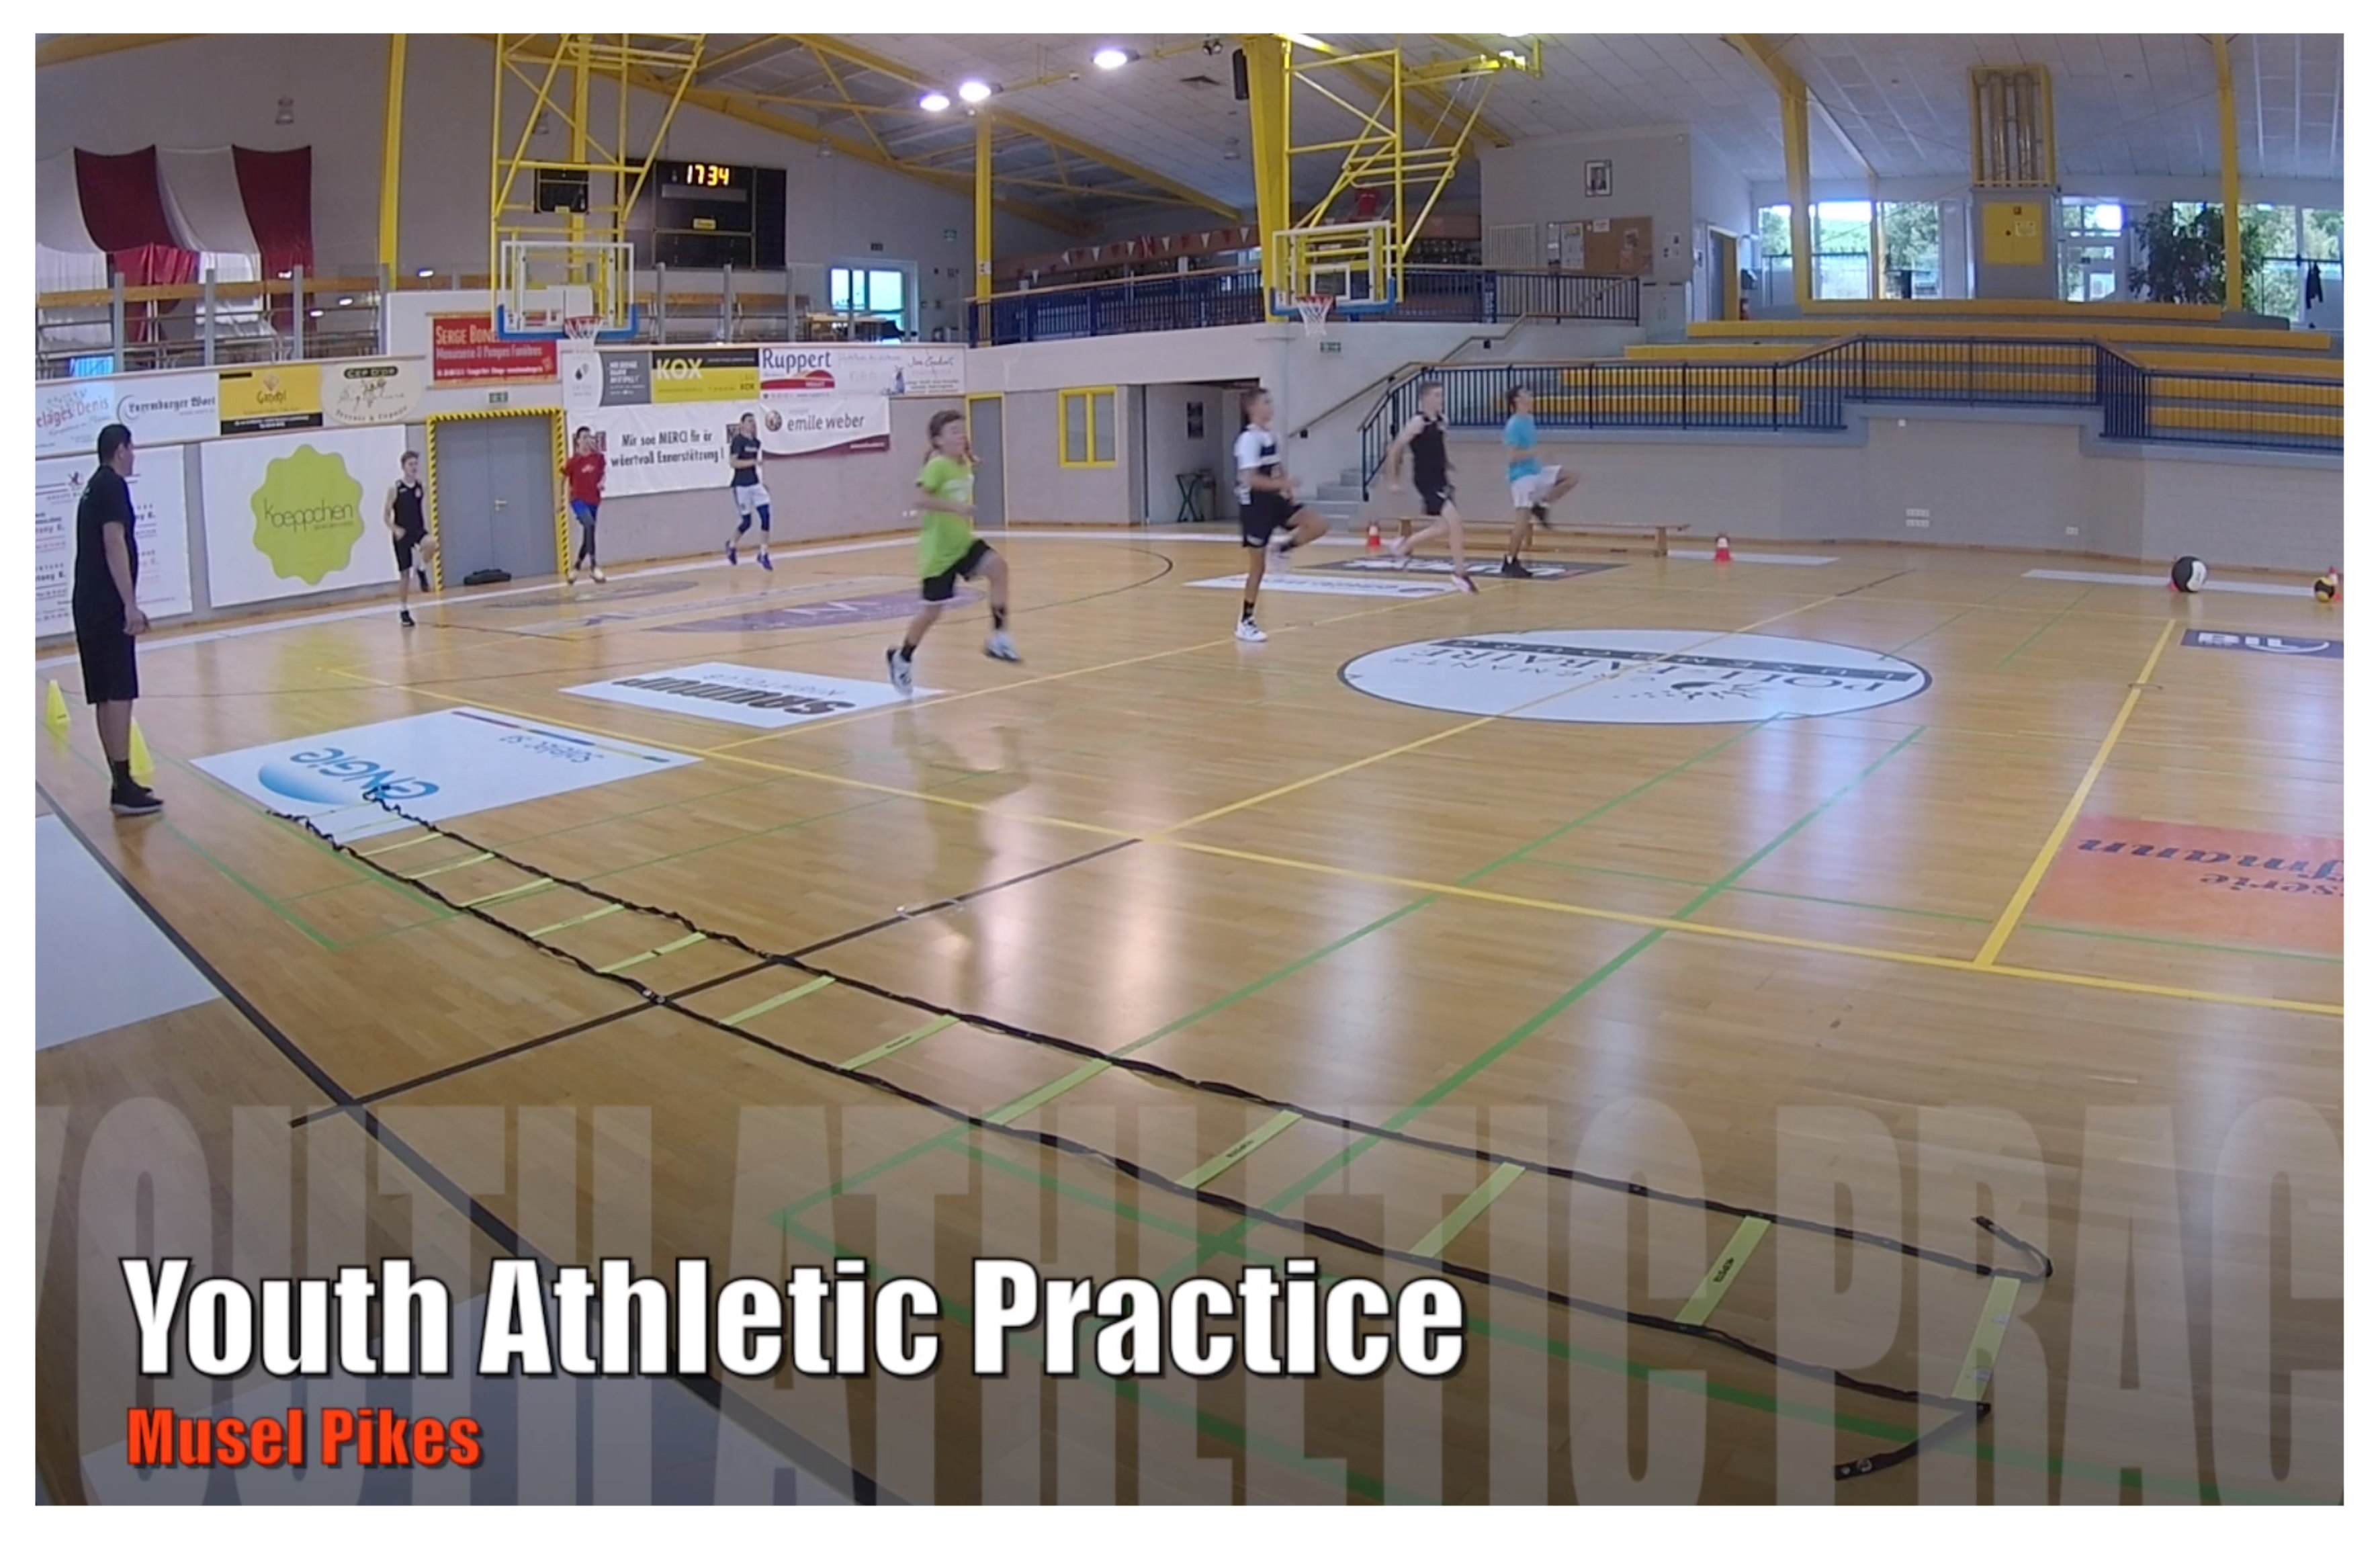 YOUTH ATHLETIC PRACTICE video by Majdi ANAN